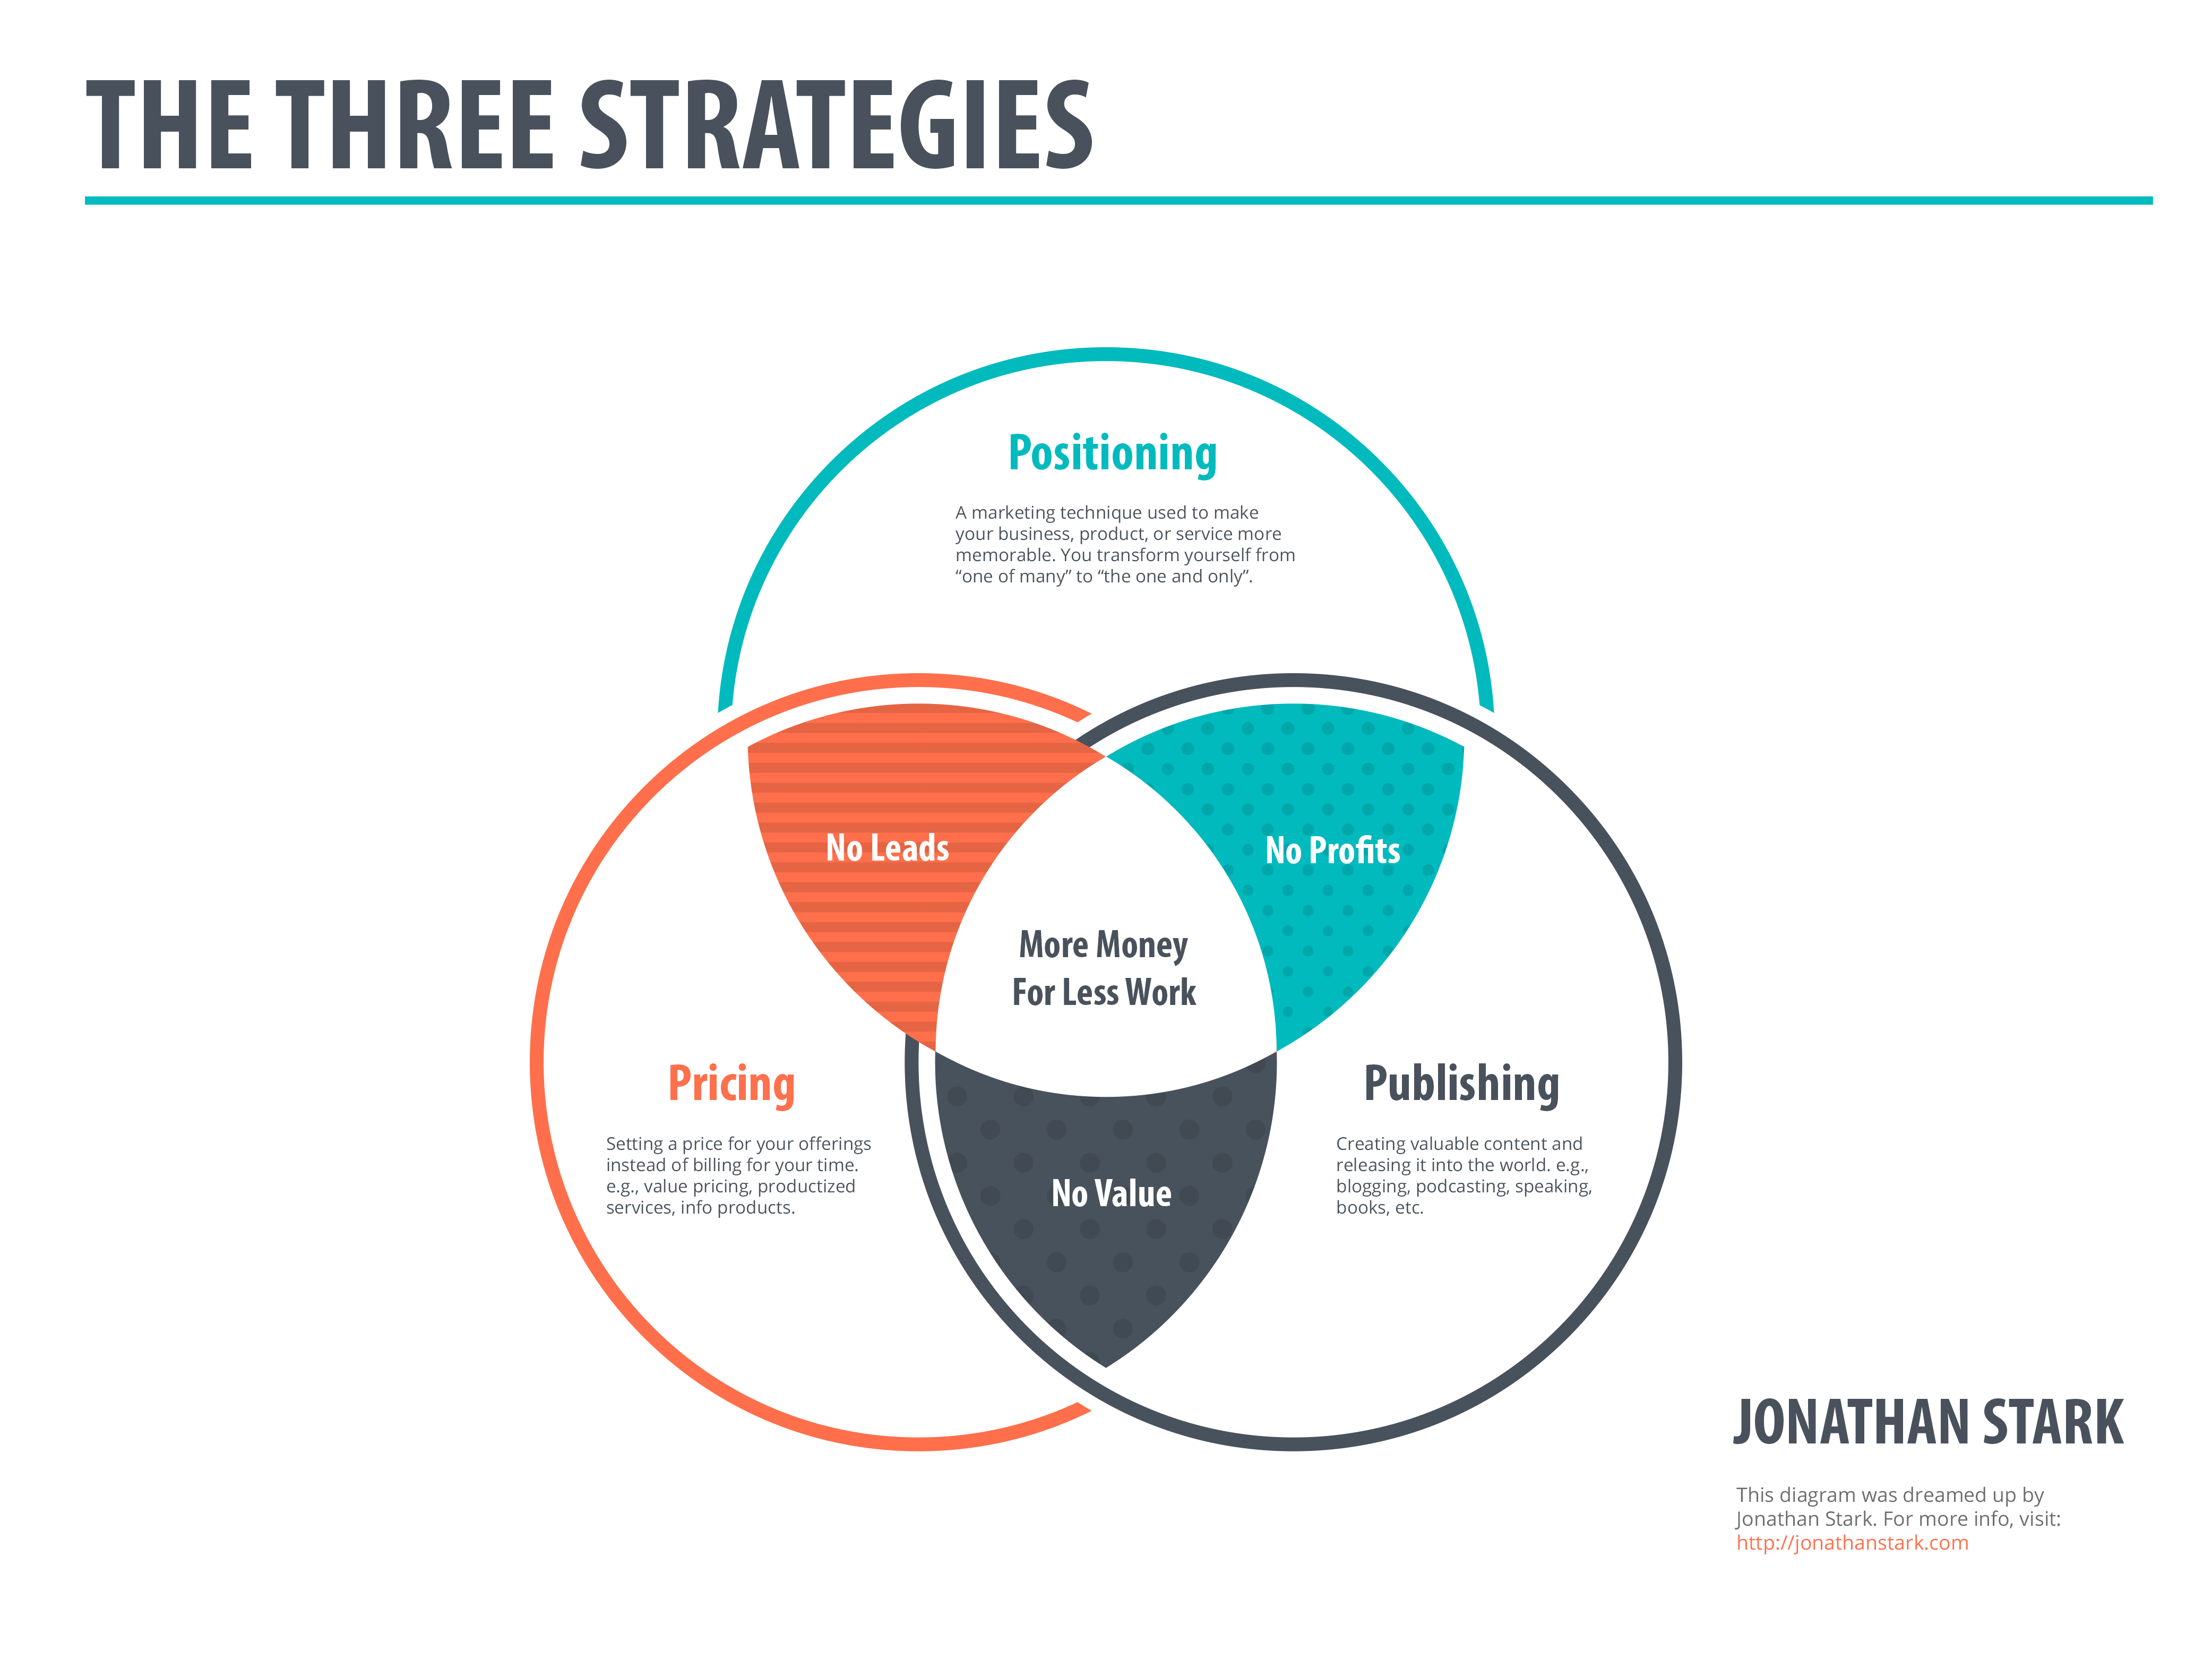 The Three Strategies by Jonathan Stark